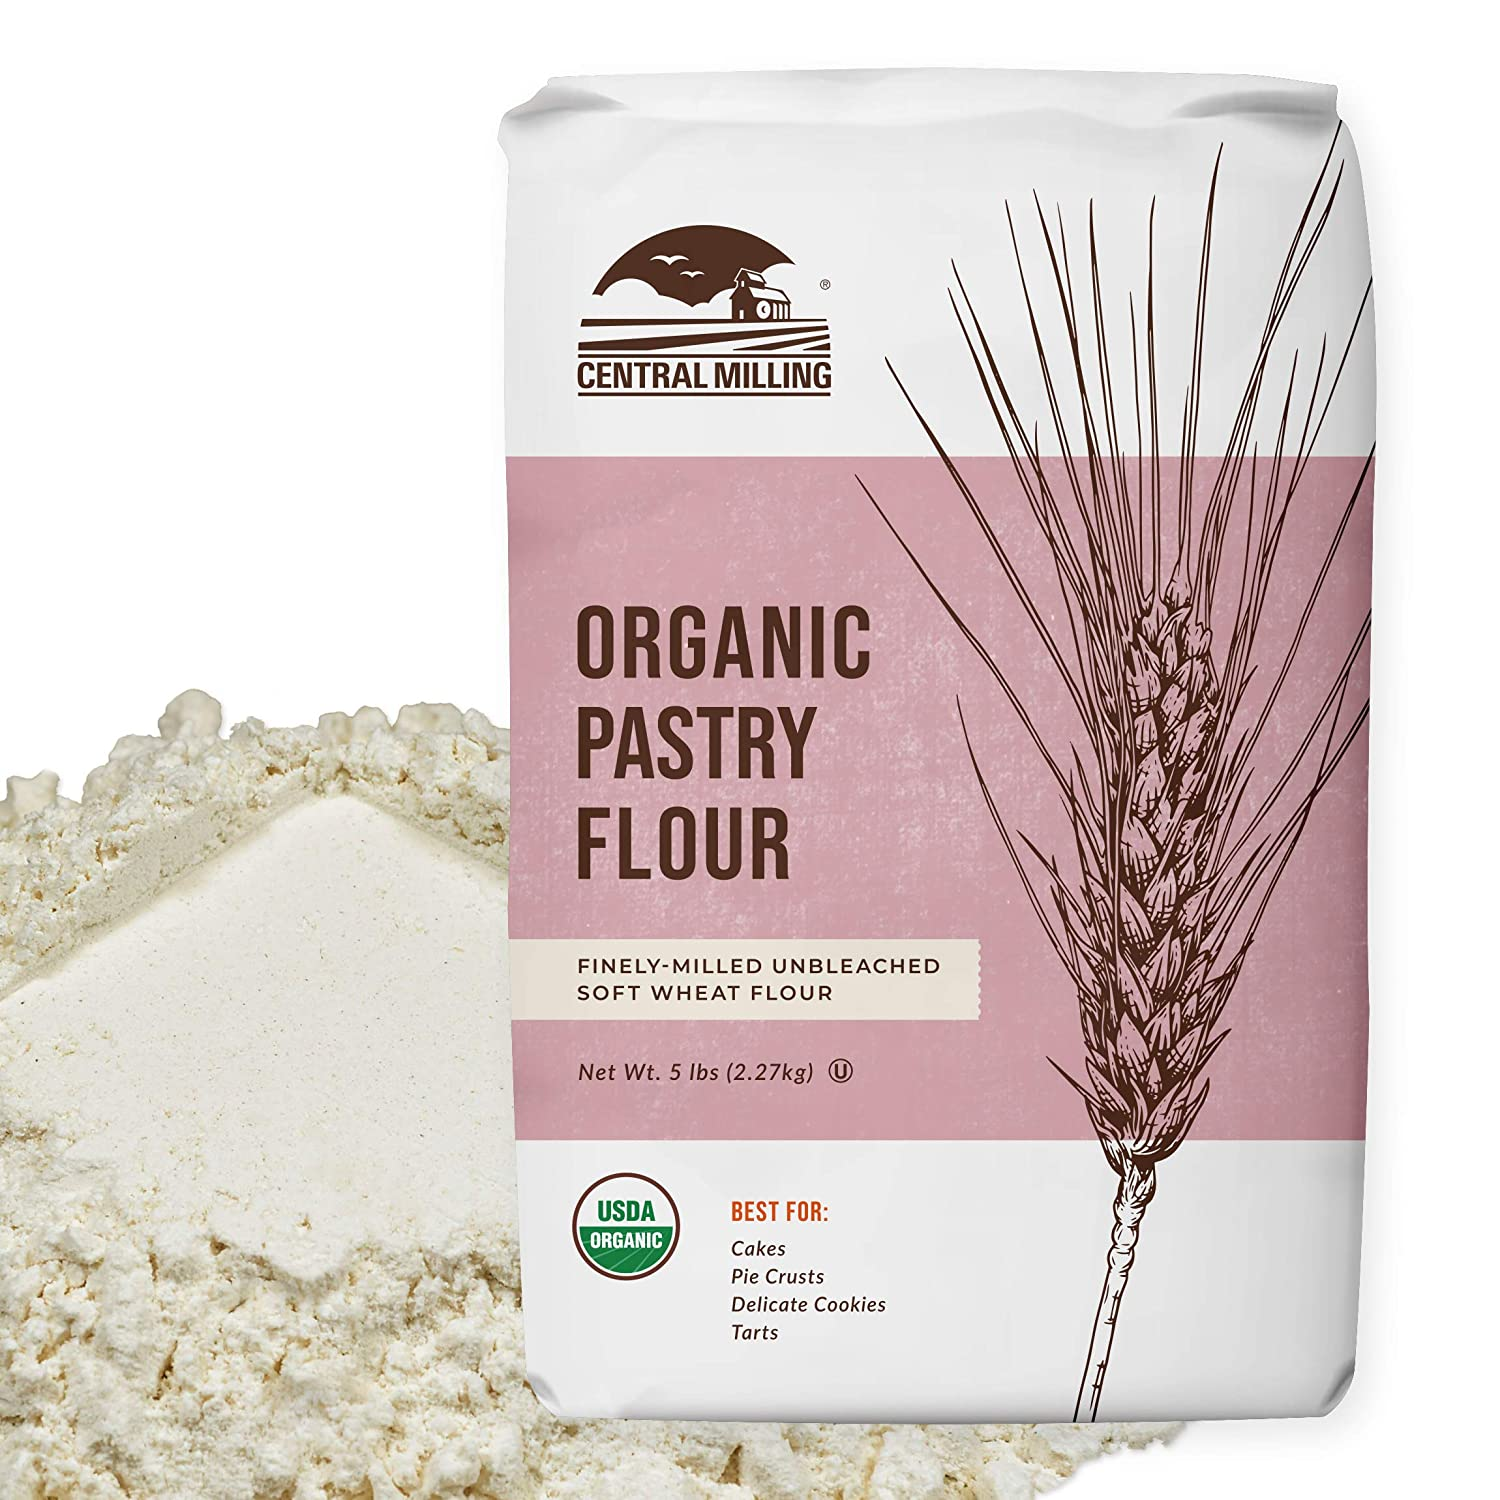 100% Organic Fashionable Pastry Flour - 00 for Genuine Pounds 5 Baking-